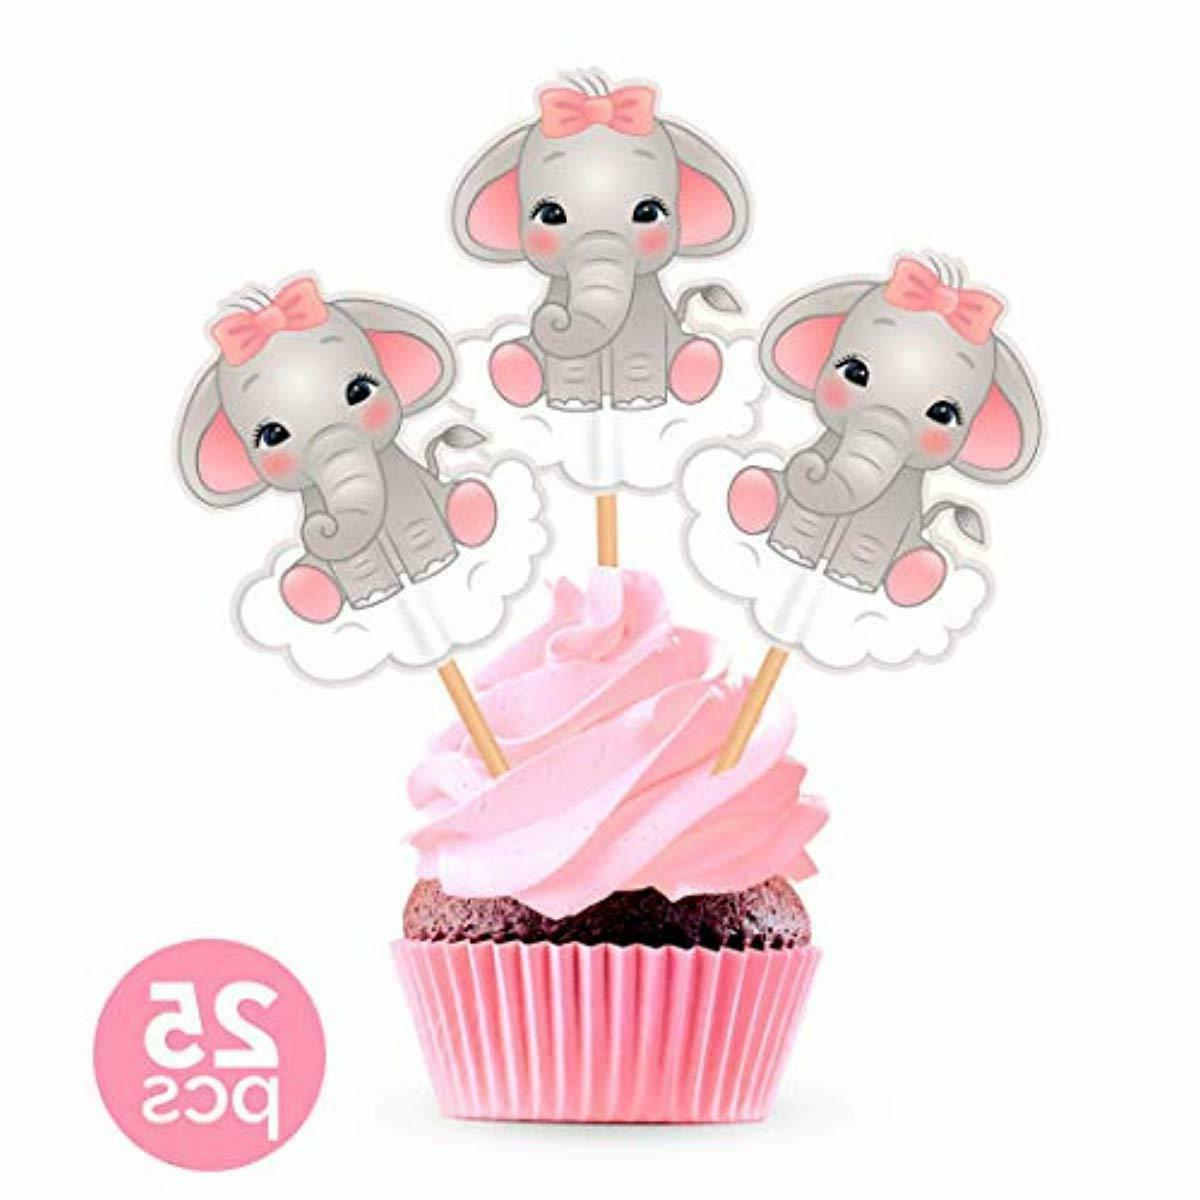 Free clipart baby pink elephants for cupcake toppers jpg freeuse download Pink Elephant Cupcake Toppers Cake Picks - Girl Baby Shower Decorations  Supplies jpg freeuse download